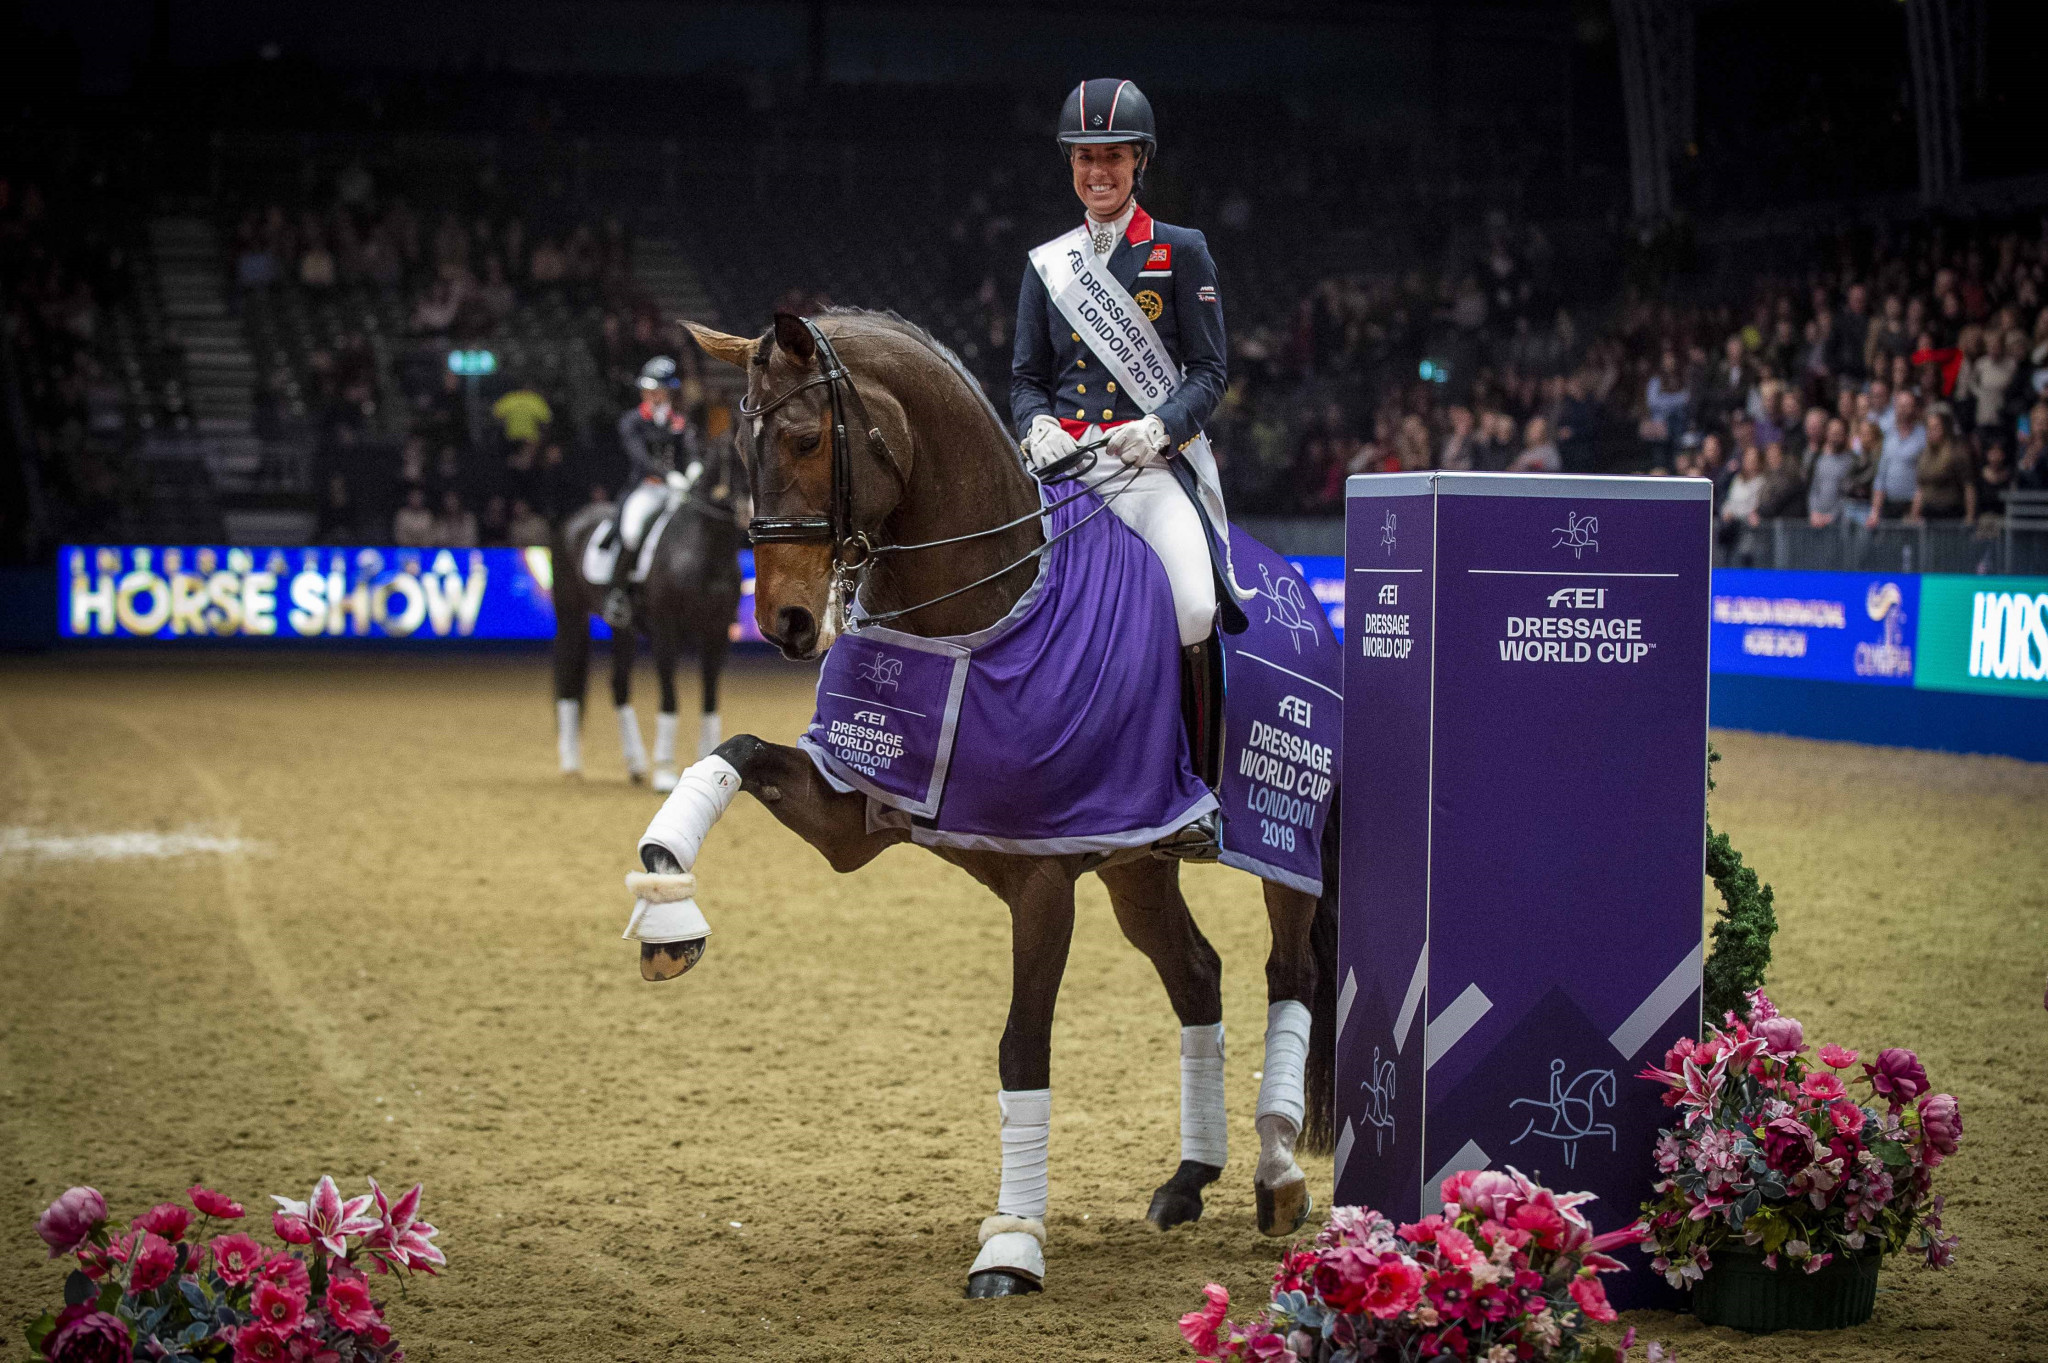 Great Britain's Charlotte Dujardin produced a superb victory with Mount St John Freestyle in the sixth leg of the 2019-2020 FEI Dressage World Cup Western European League in London ©FEI/Jon Stroud